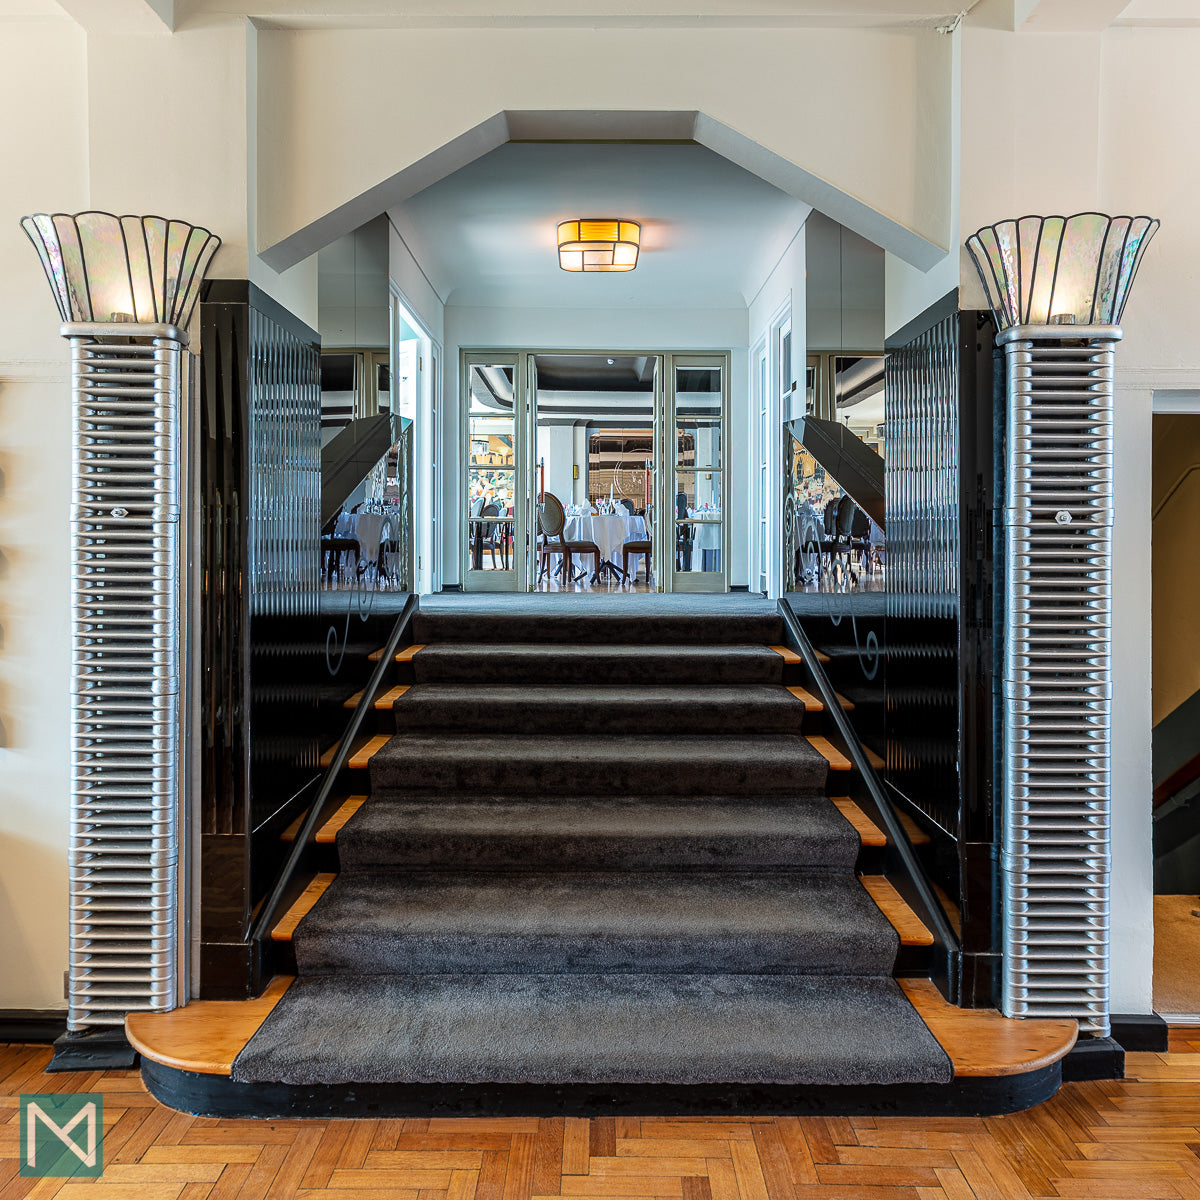 Looking from the lobby towards the ballroom of the Burgh Island Hotel